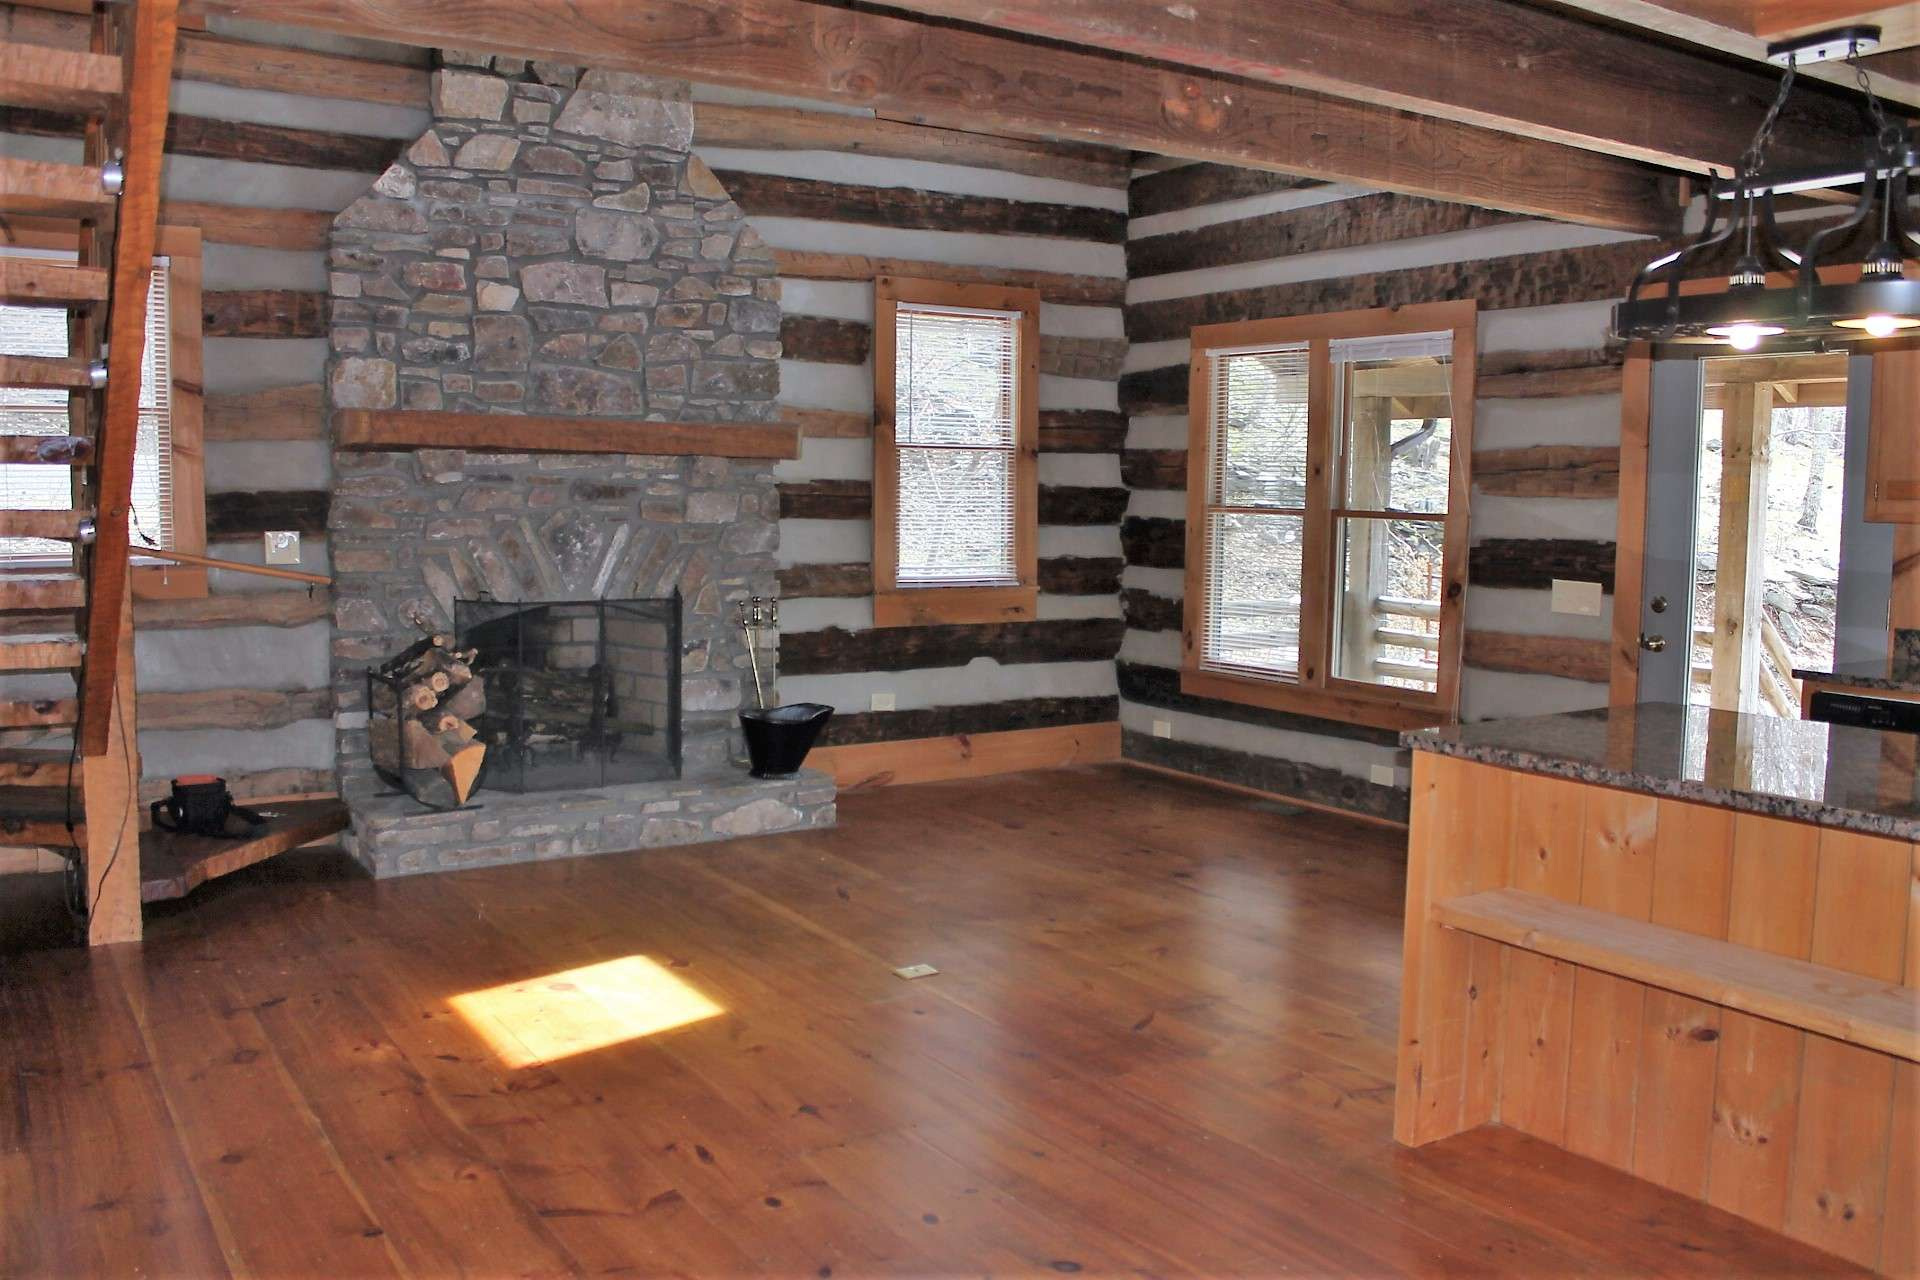 The interior features an open floor plan with wide-plank wood flooring throughout.